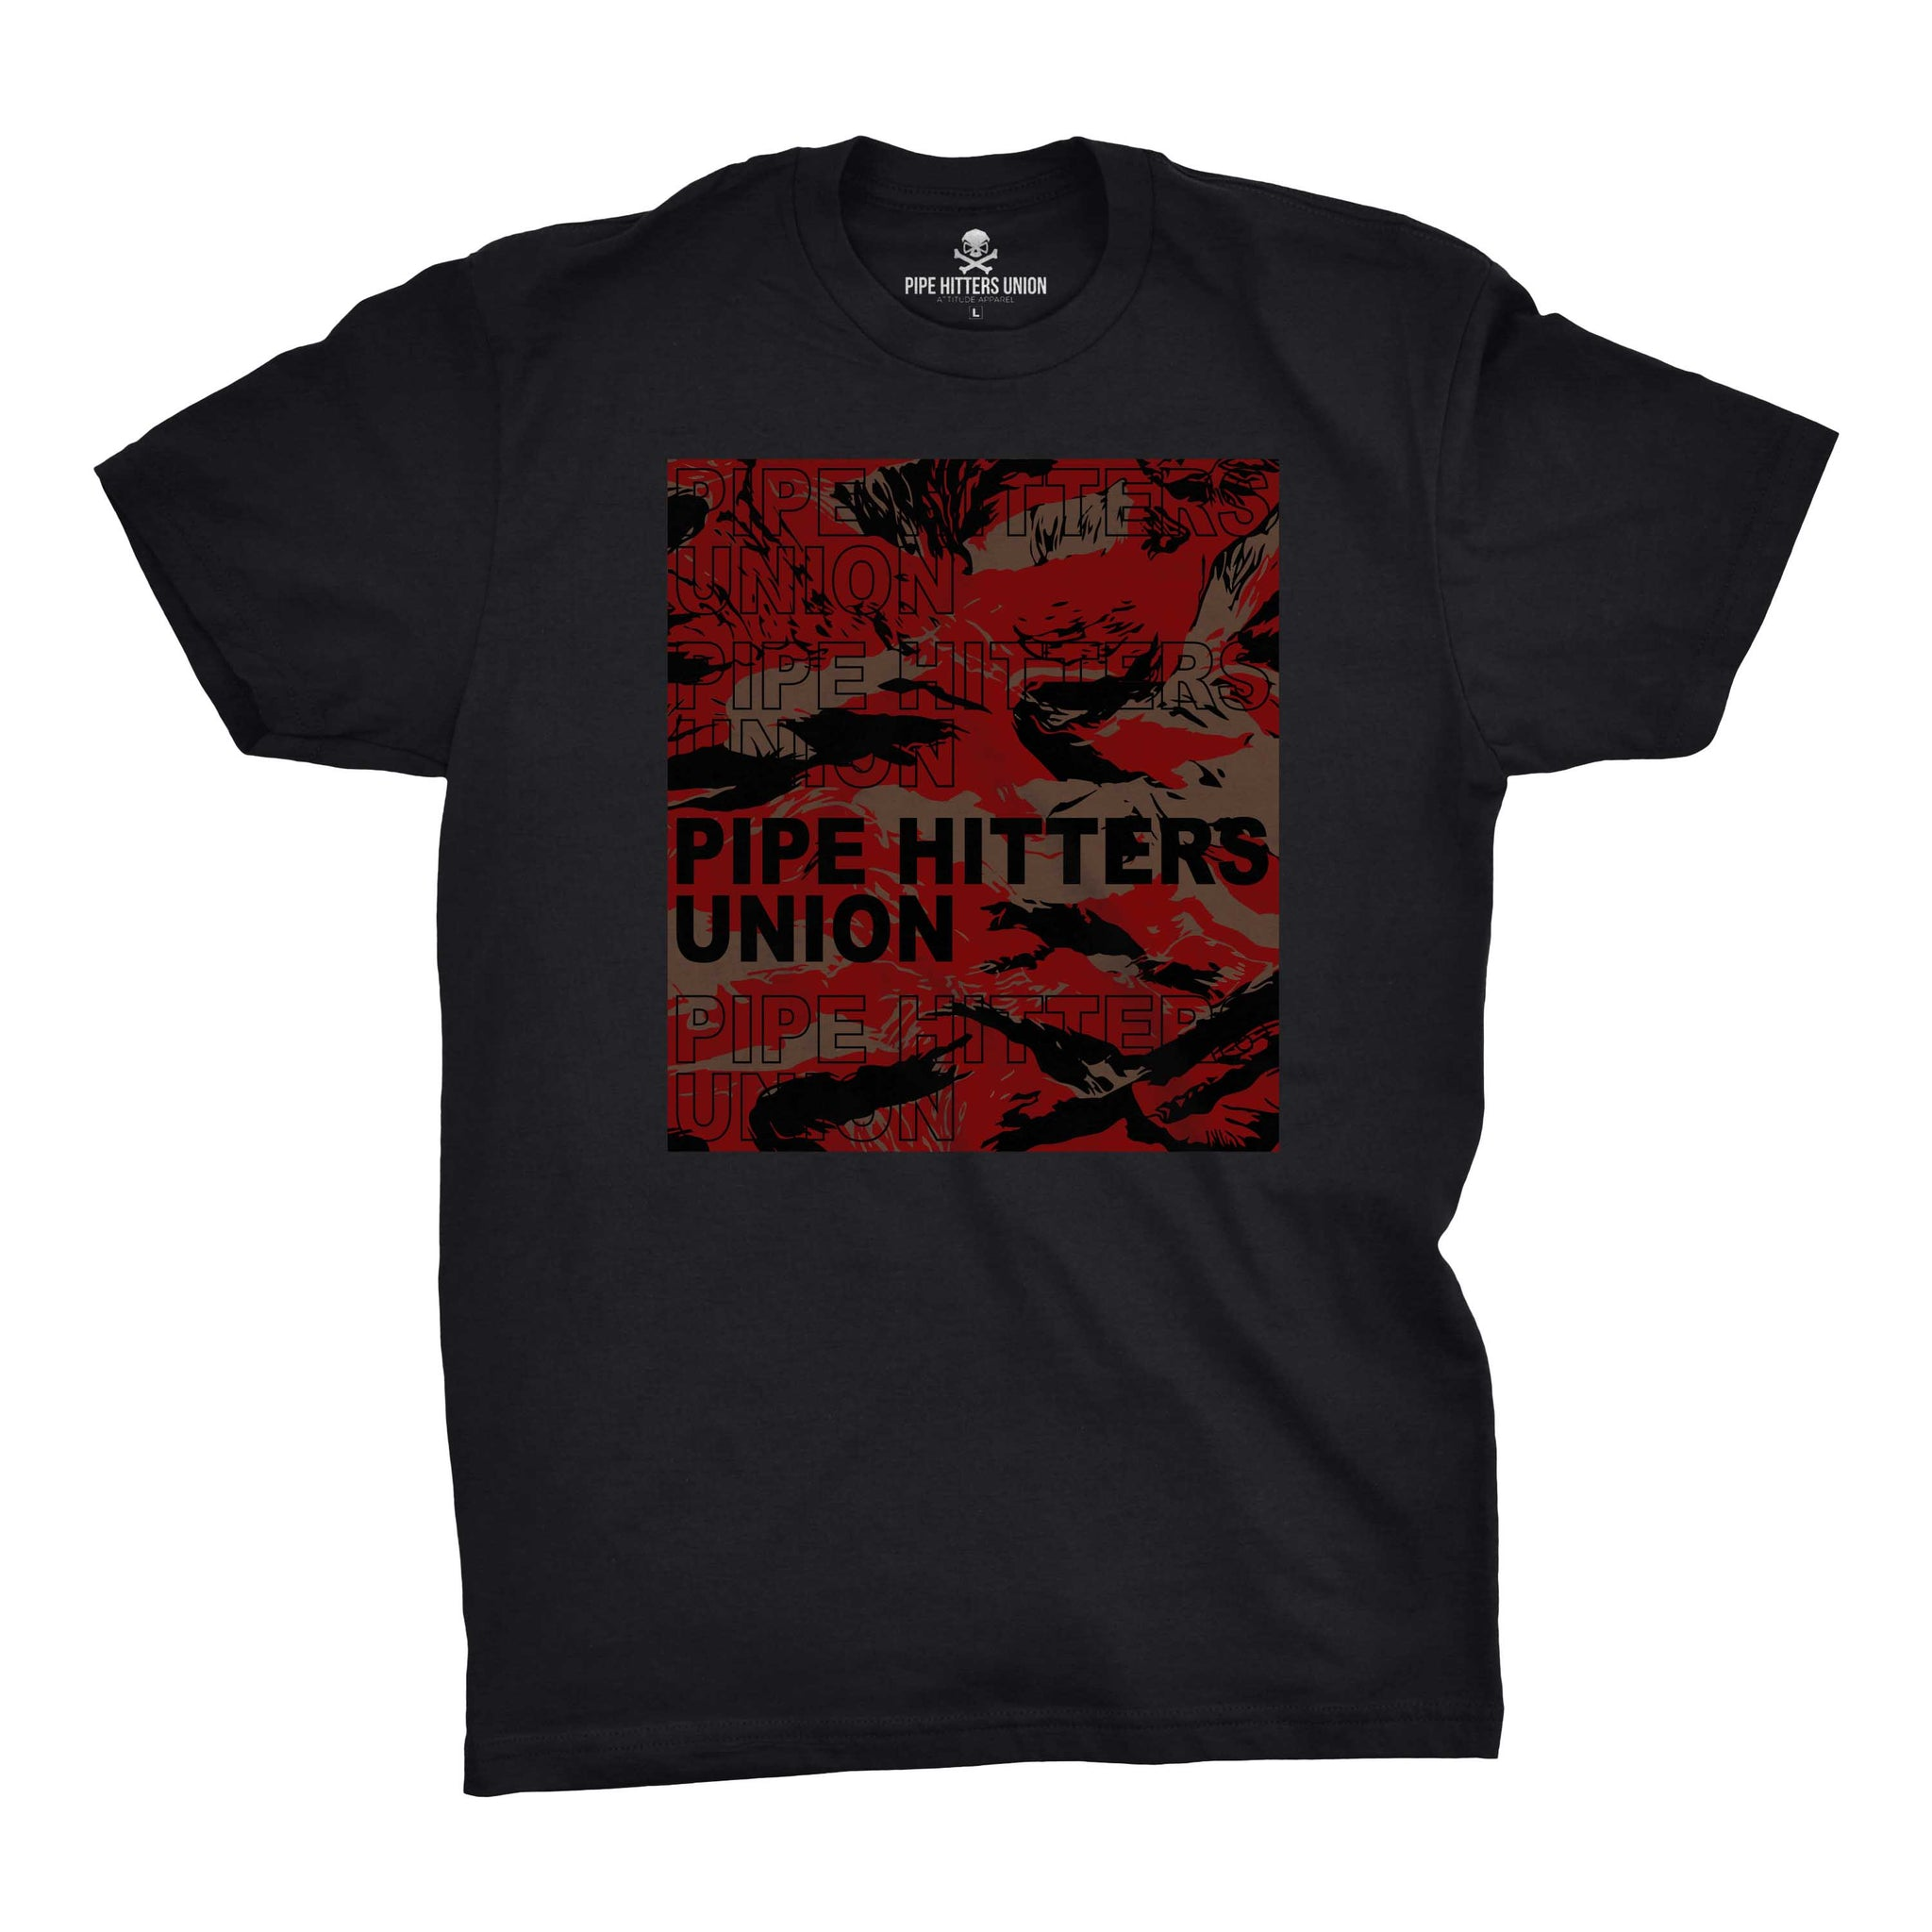 Pipe Hitter Pattern Analysis - Black/Red Tigerstripe - T-Shirts - Pipe Hitters Union